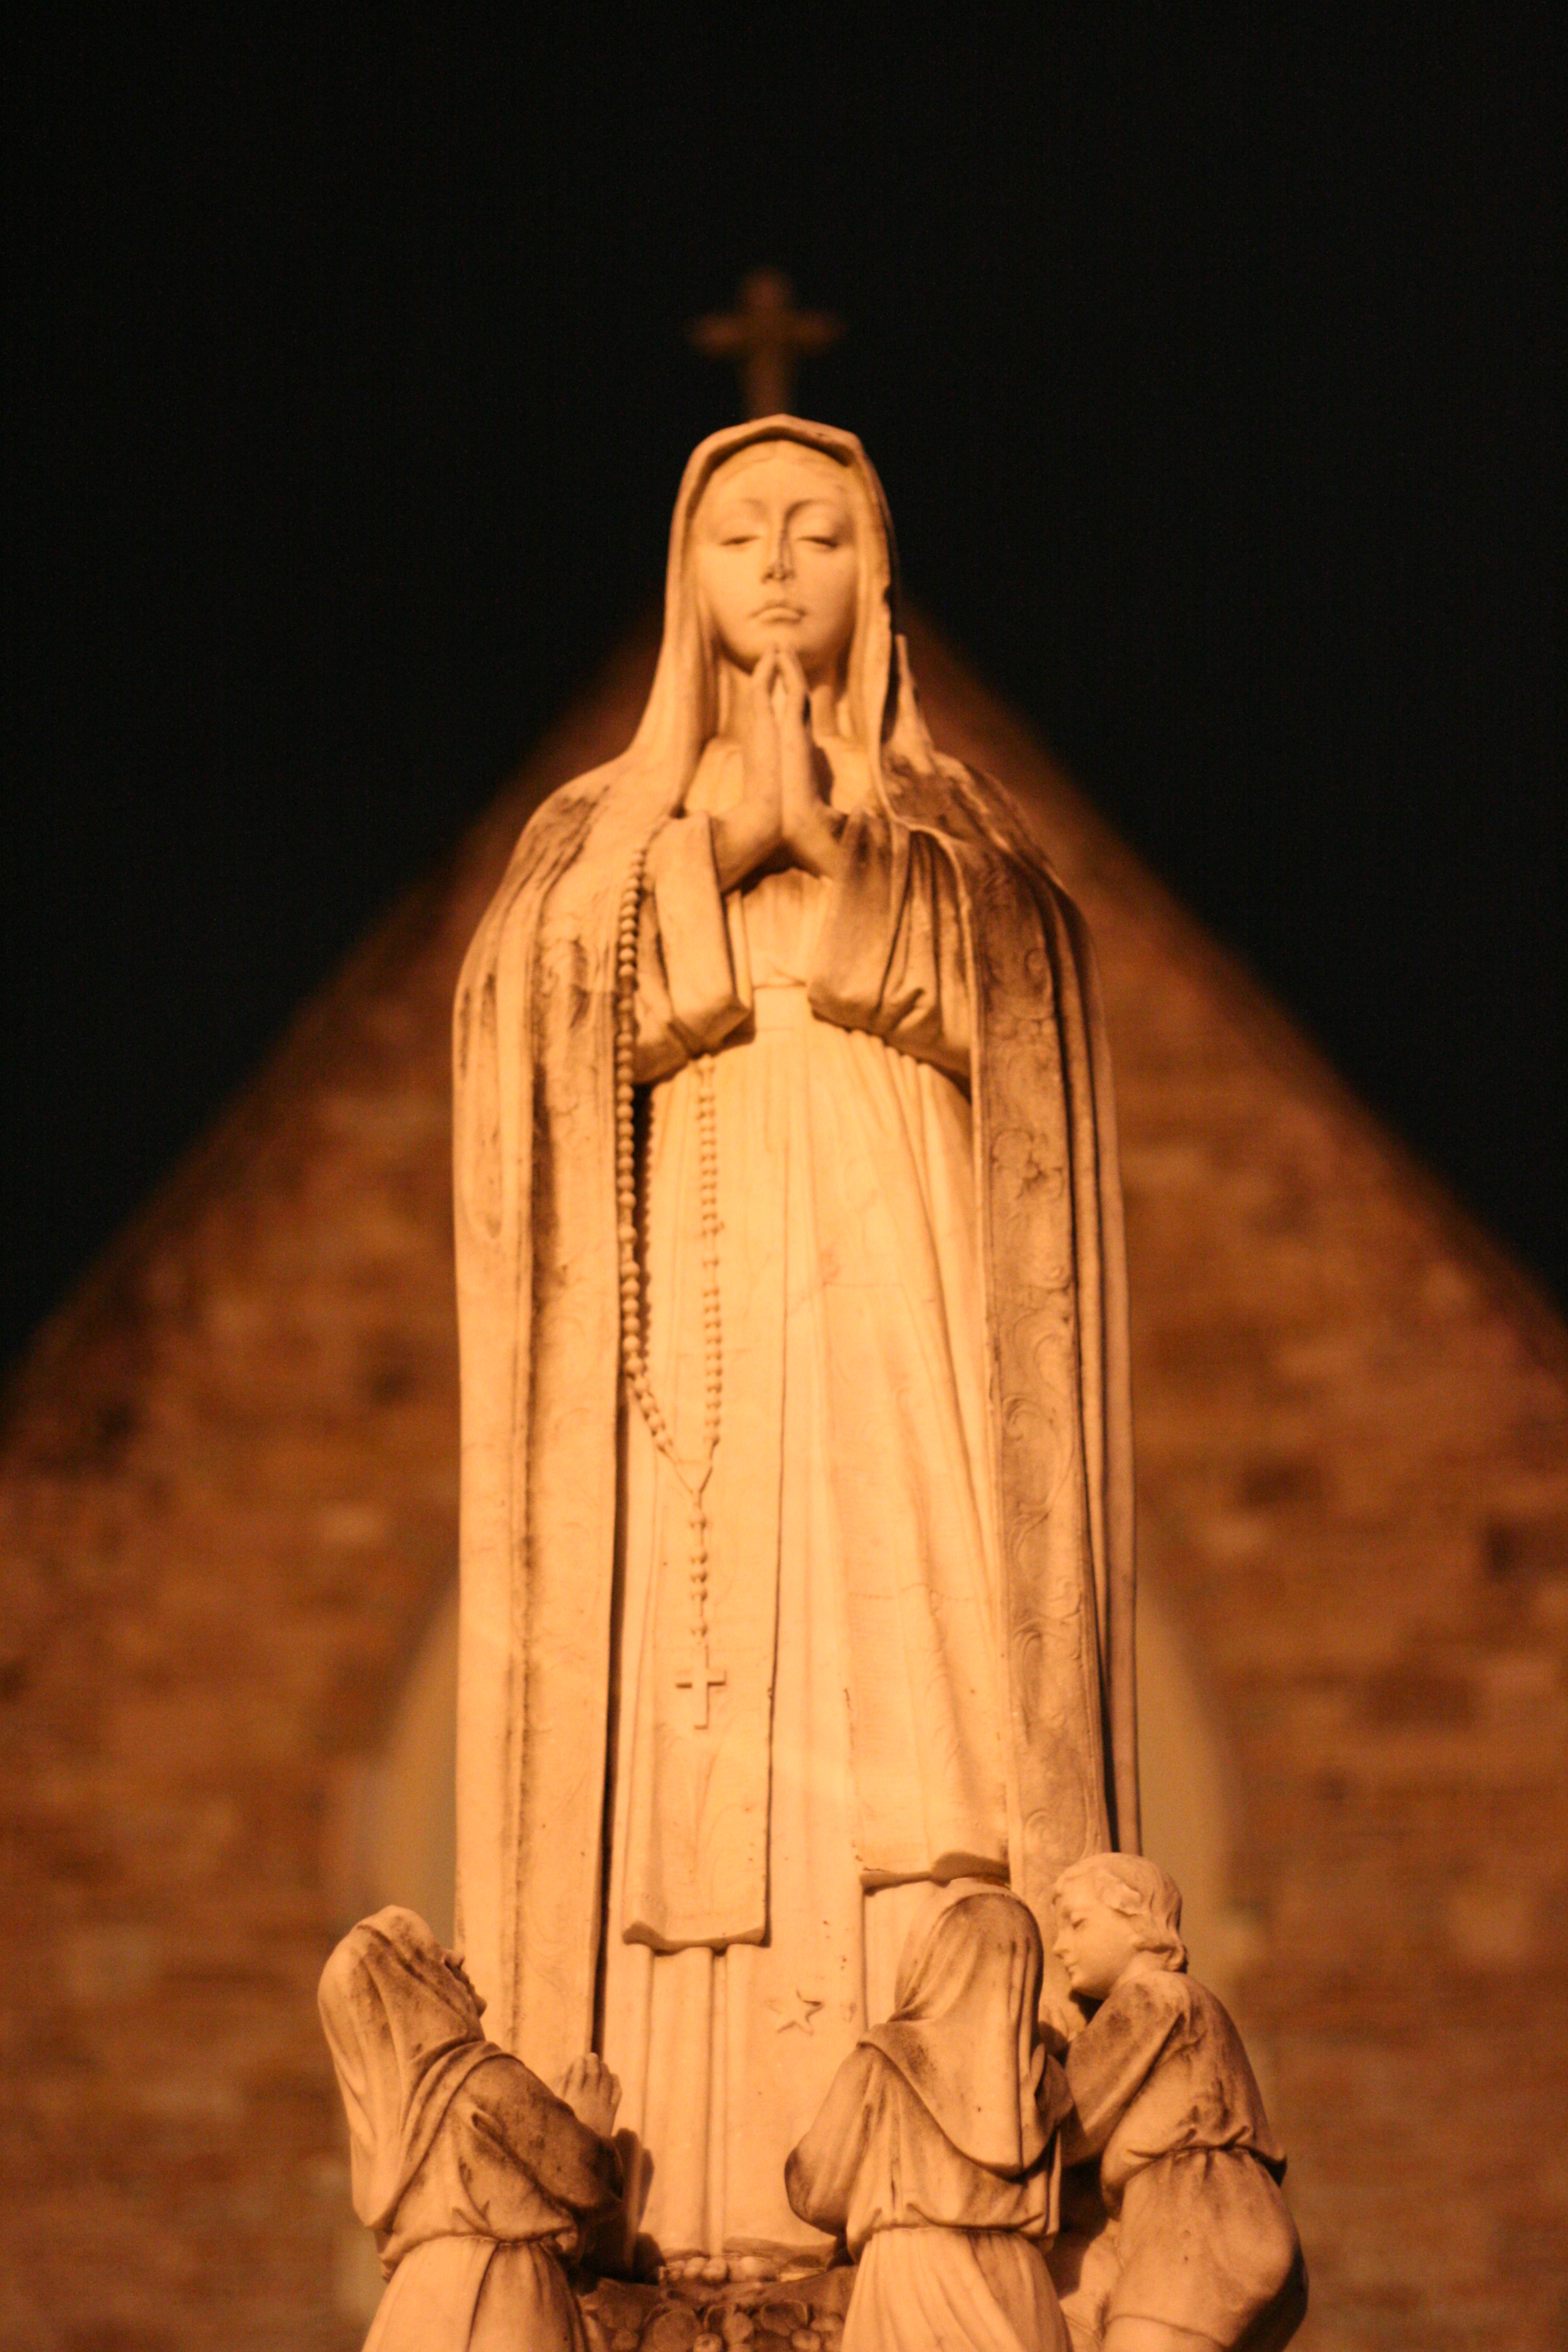 A statue of Mary Magdalene at a church at night